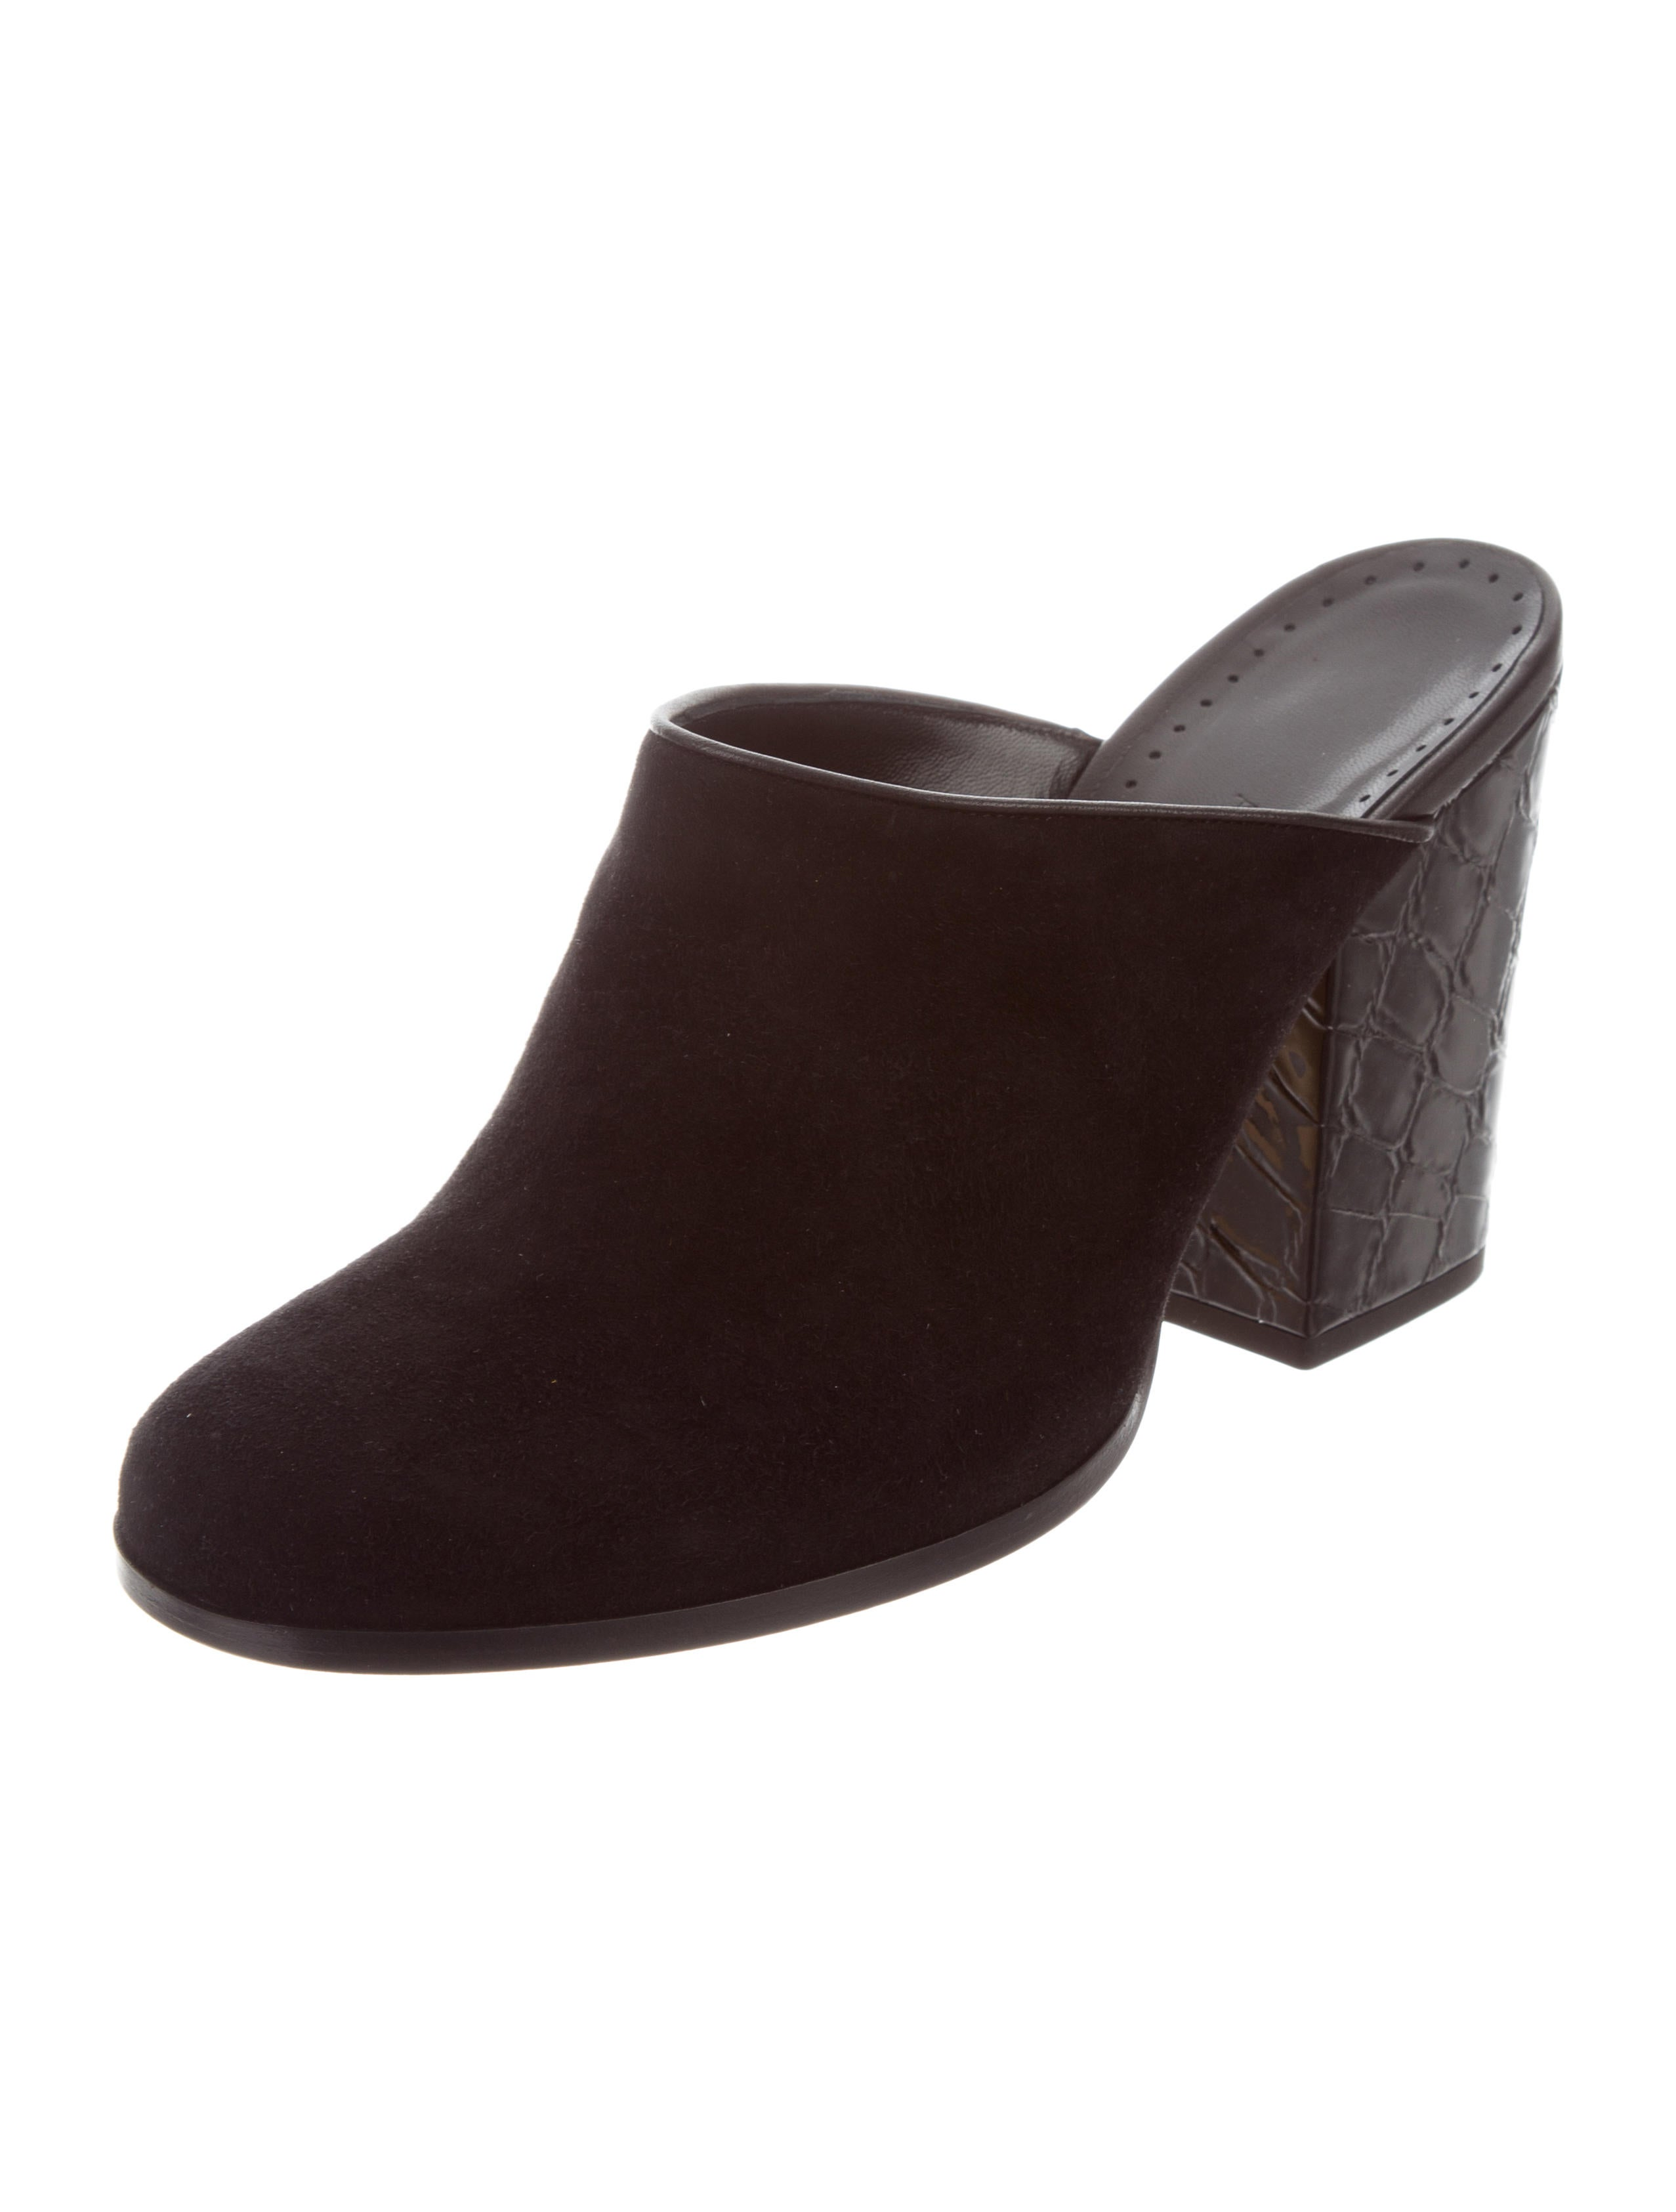 Alexa Wagner Suede Round-Toe Mules w/ Tags 2014 cheap sale P95Erk